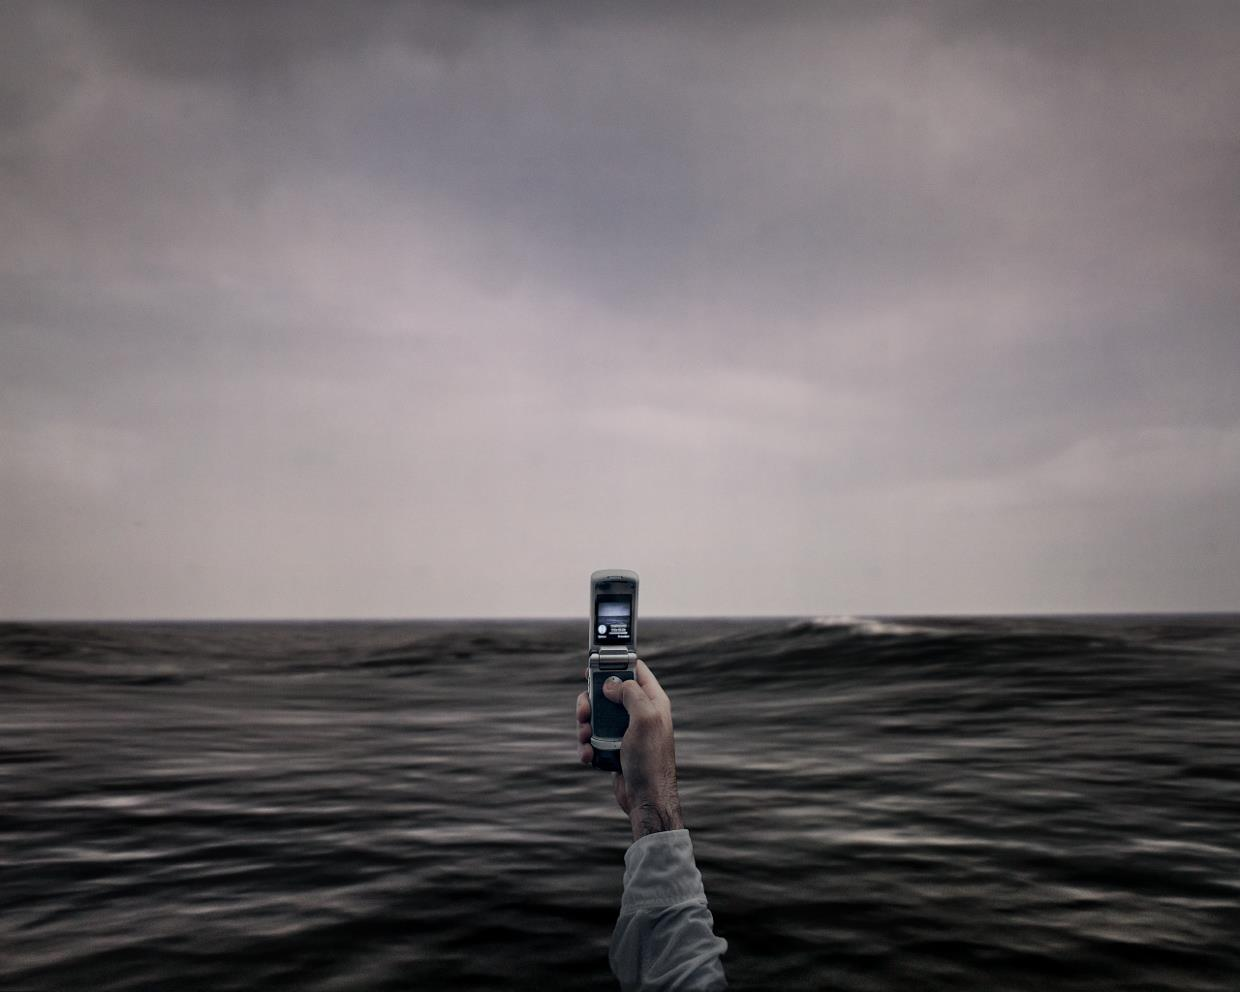 Photographer wants to punch reality in the face with his